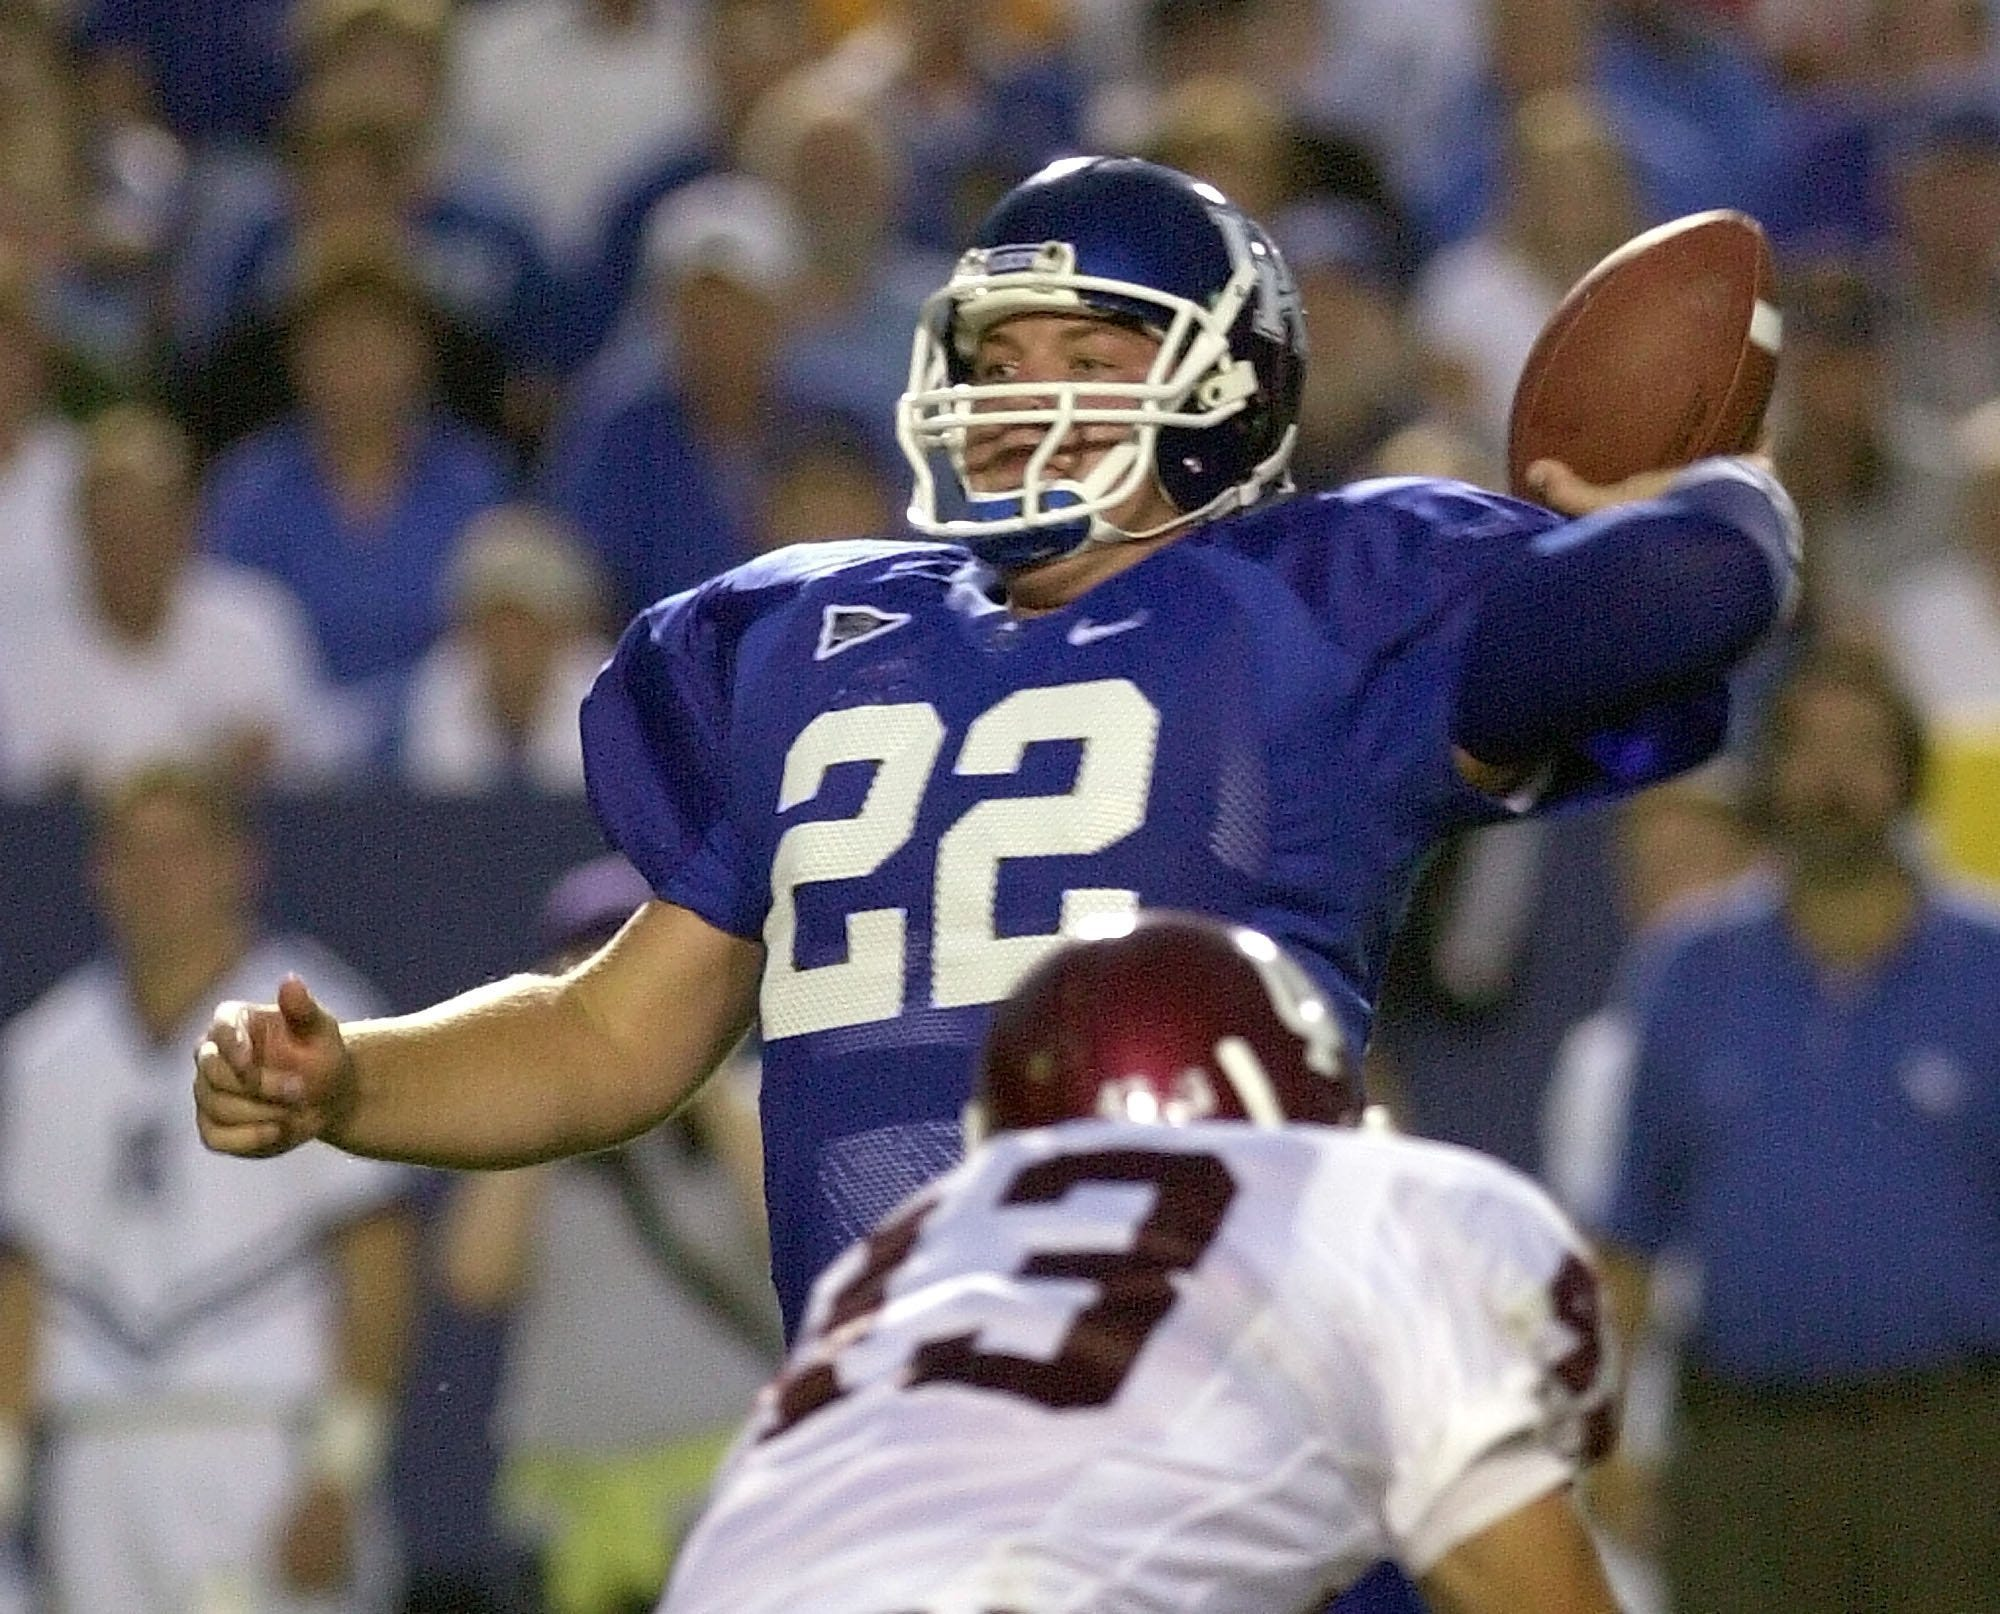 Former Kentucky star QB Jared Lorenzen 'fighting with everything he has' in hospital